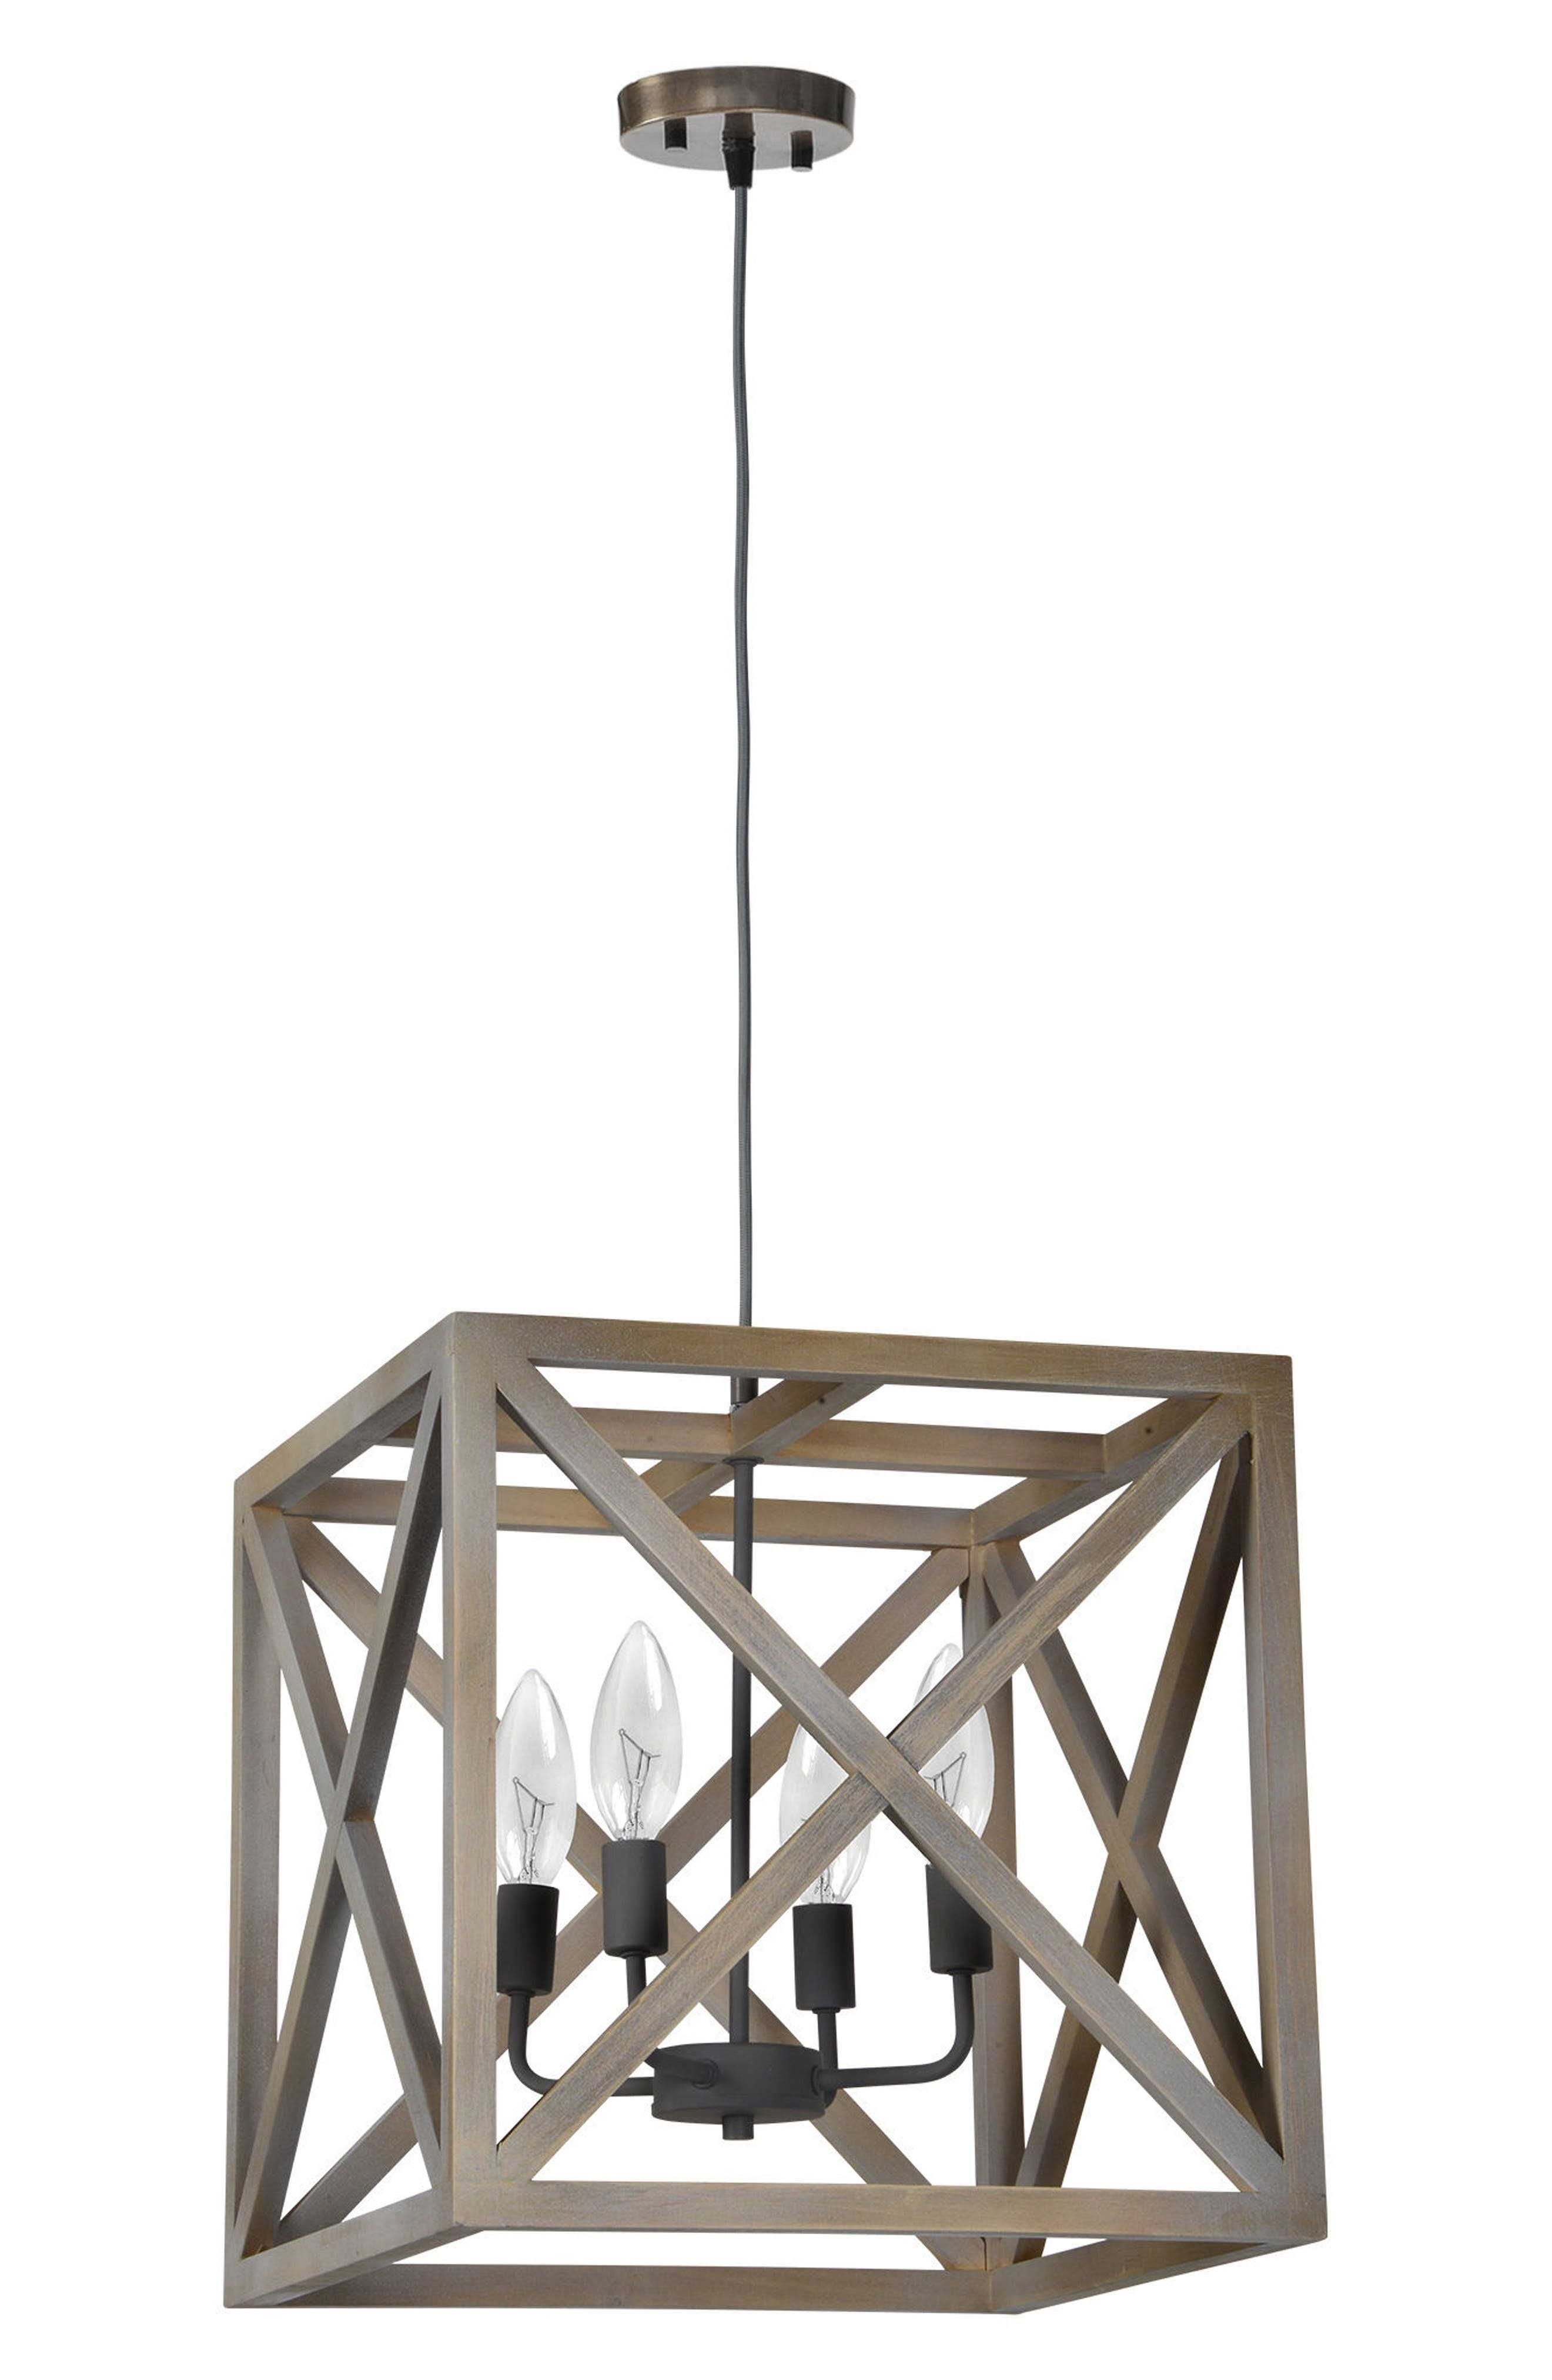 Main Image - Renwil Crate Ceiling Fixture